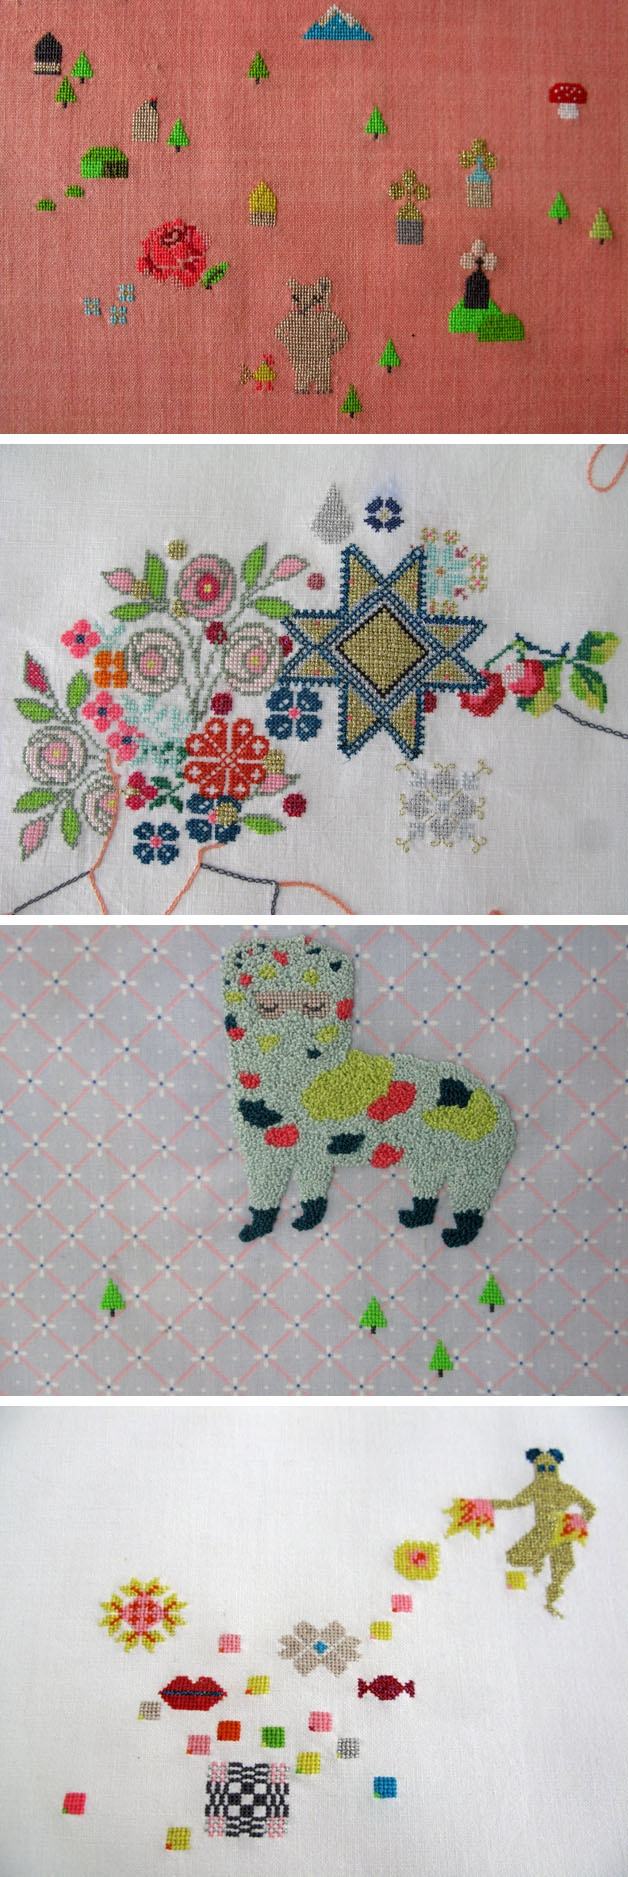 Ana Botezatu | cross stitch | borduren